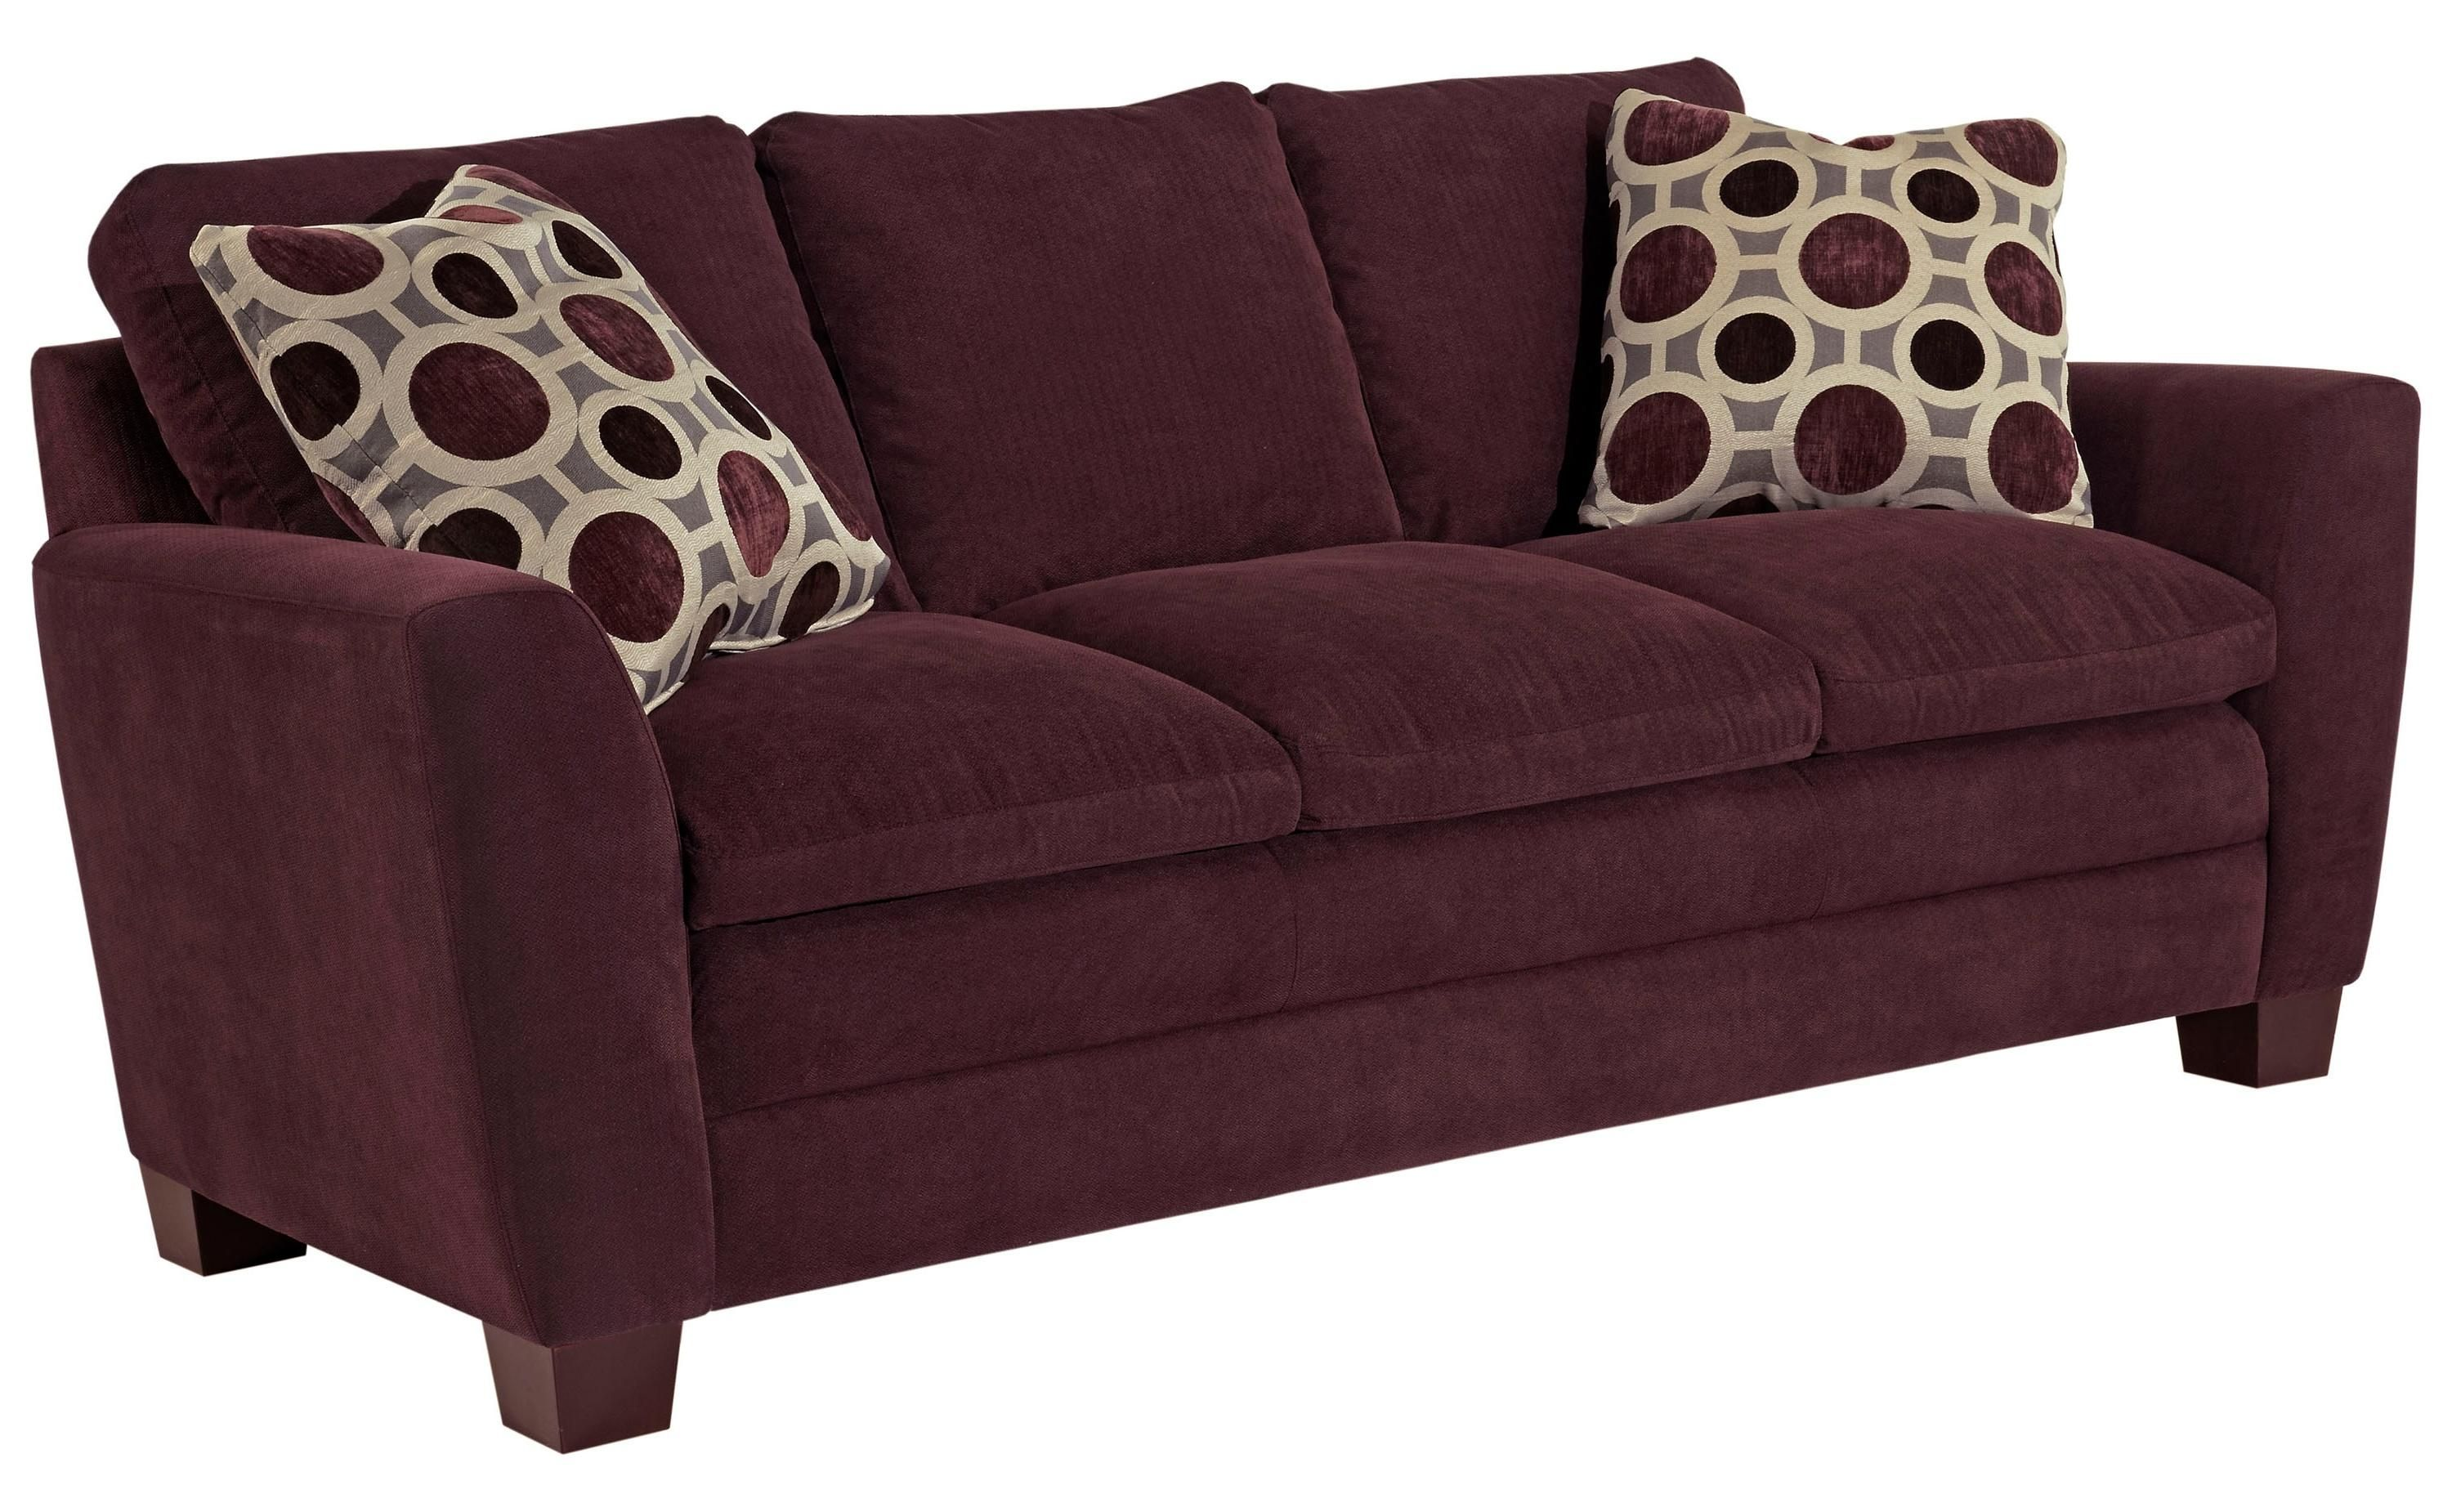 plum leather sofa black and grey cuddle chair colored courtney by broyhill furniture color